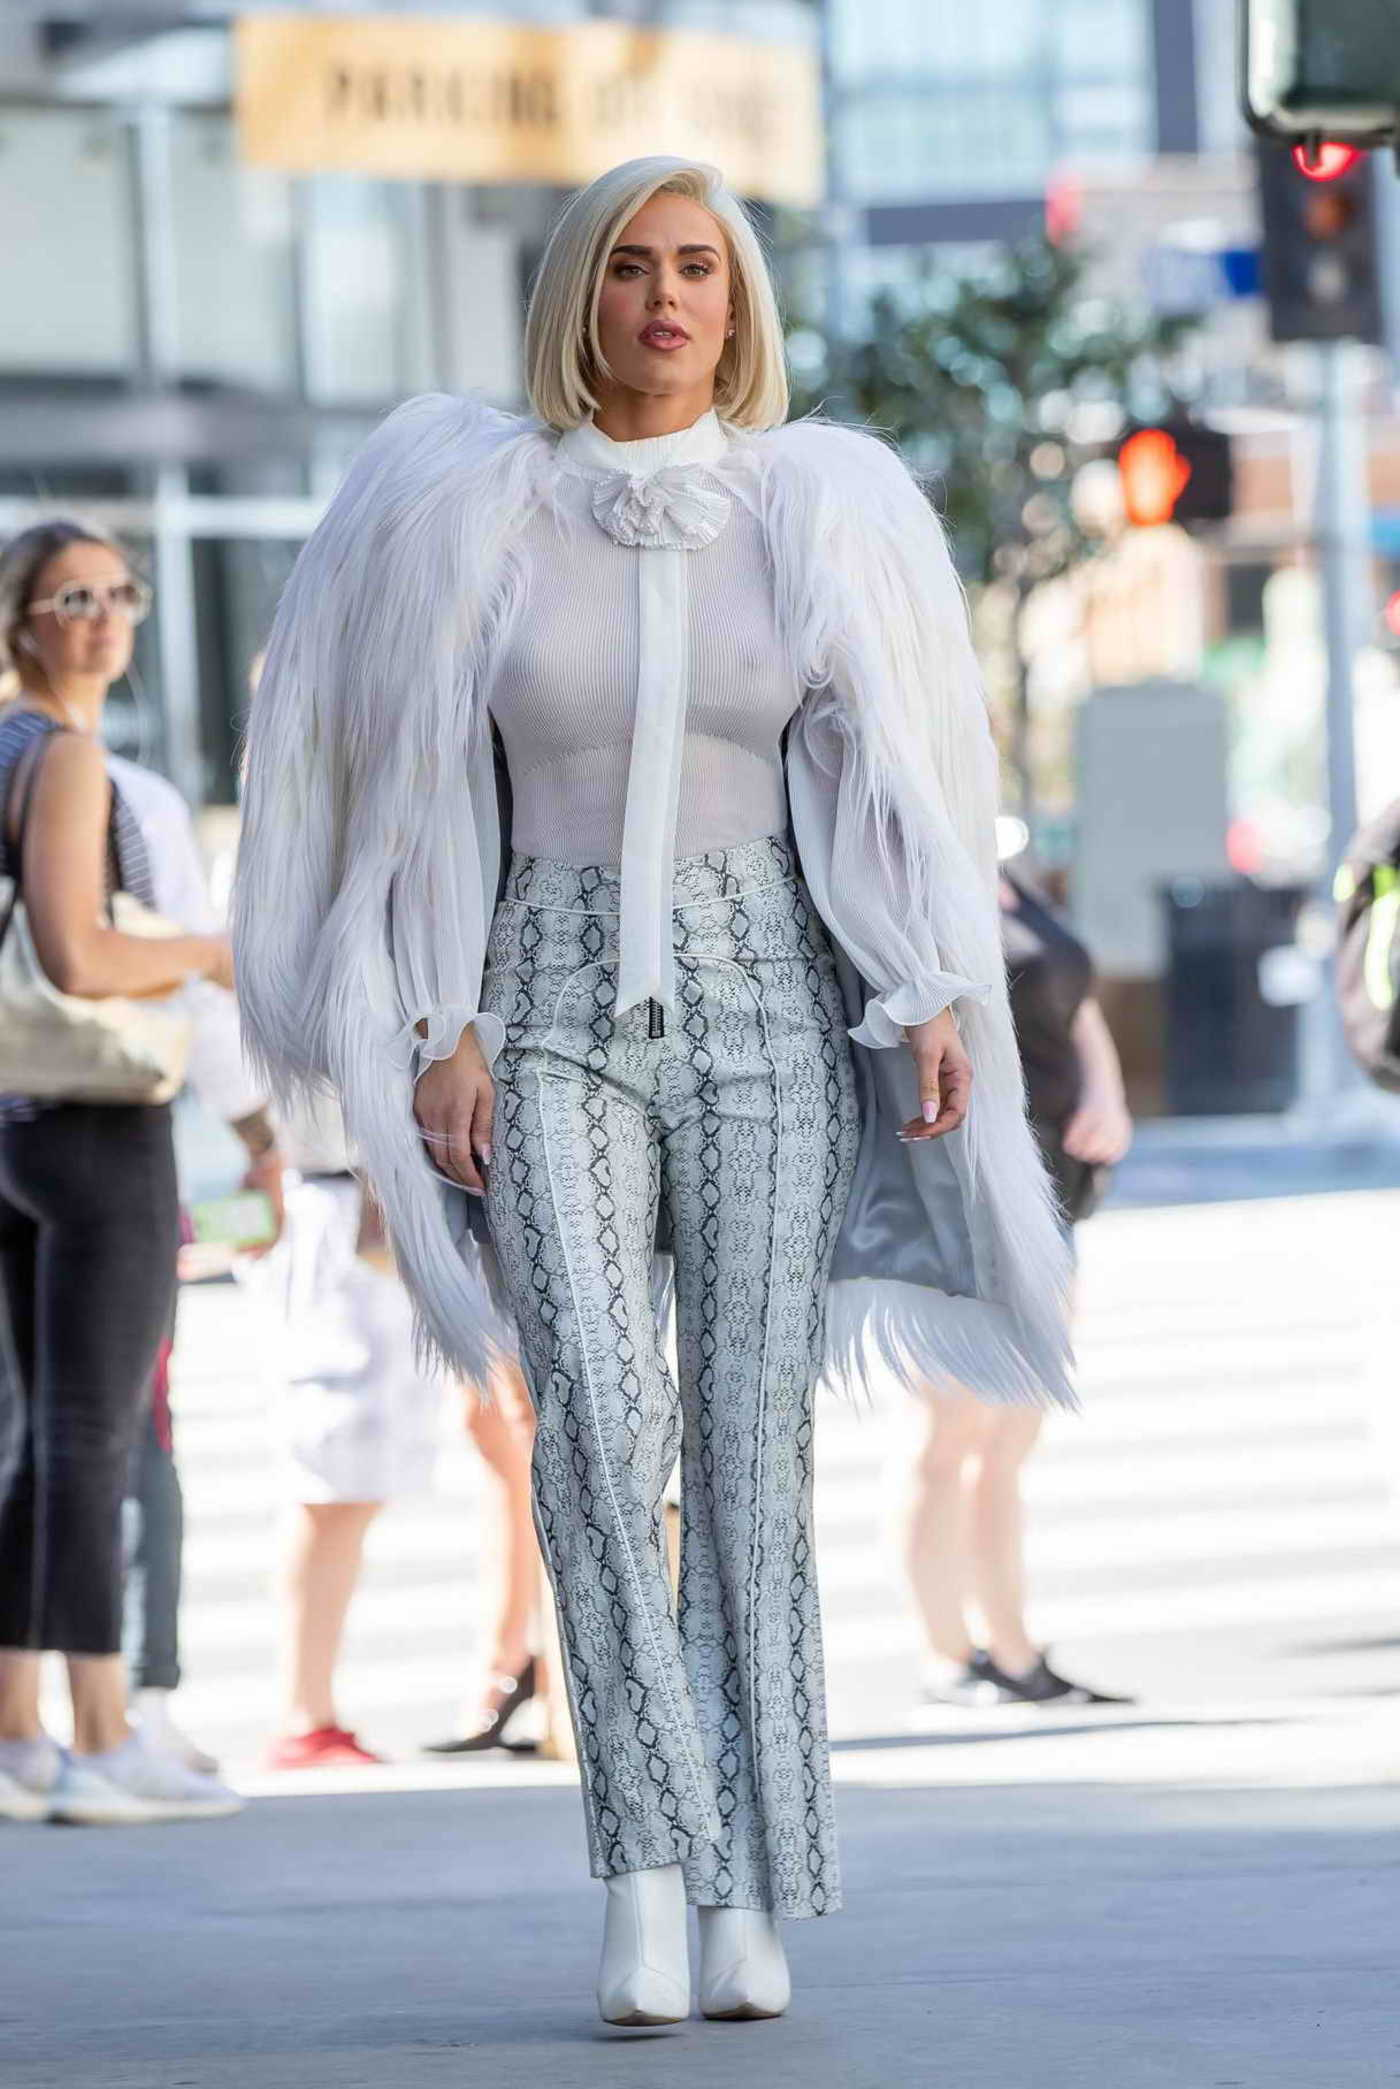 CJ Perry in a Gray Snakeskin Pants Was Seen Out in Hollywood 03/20/2019